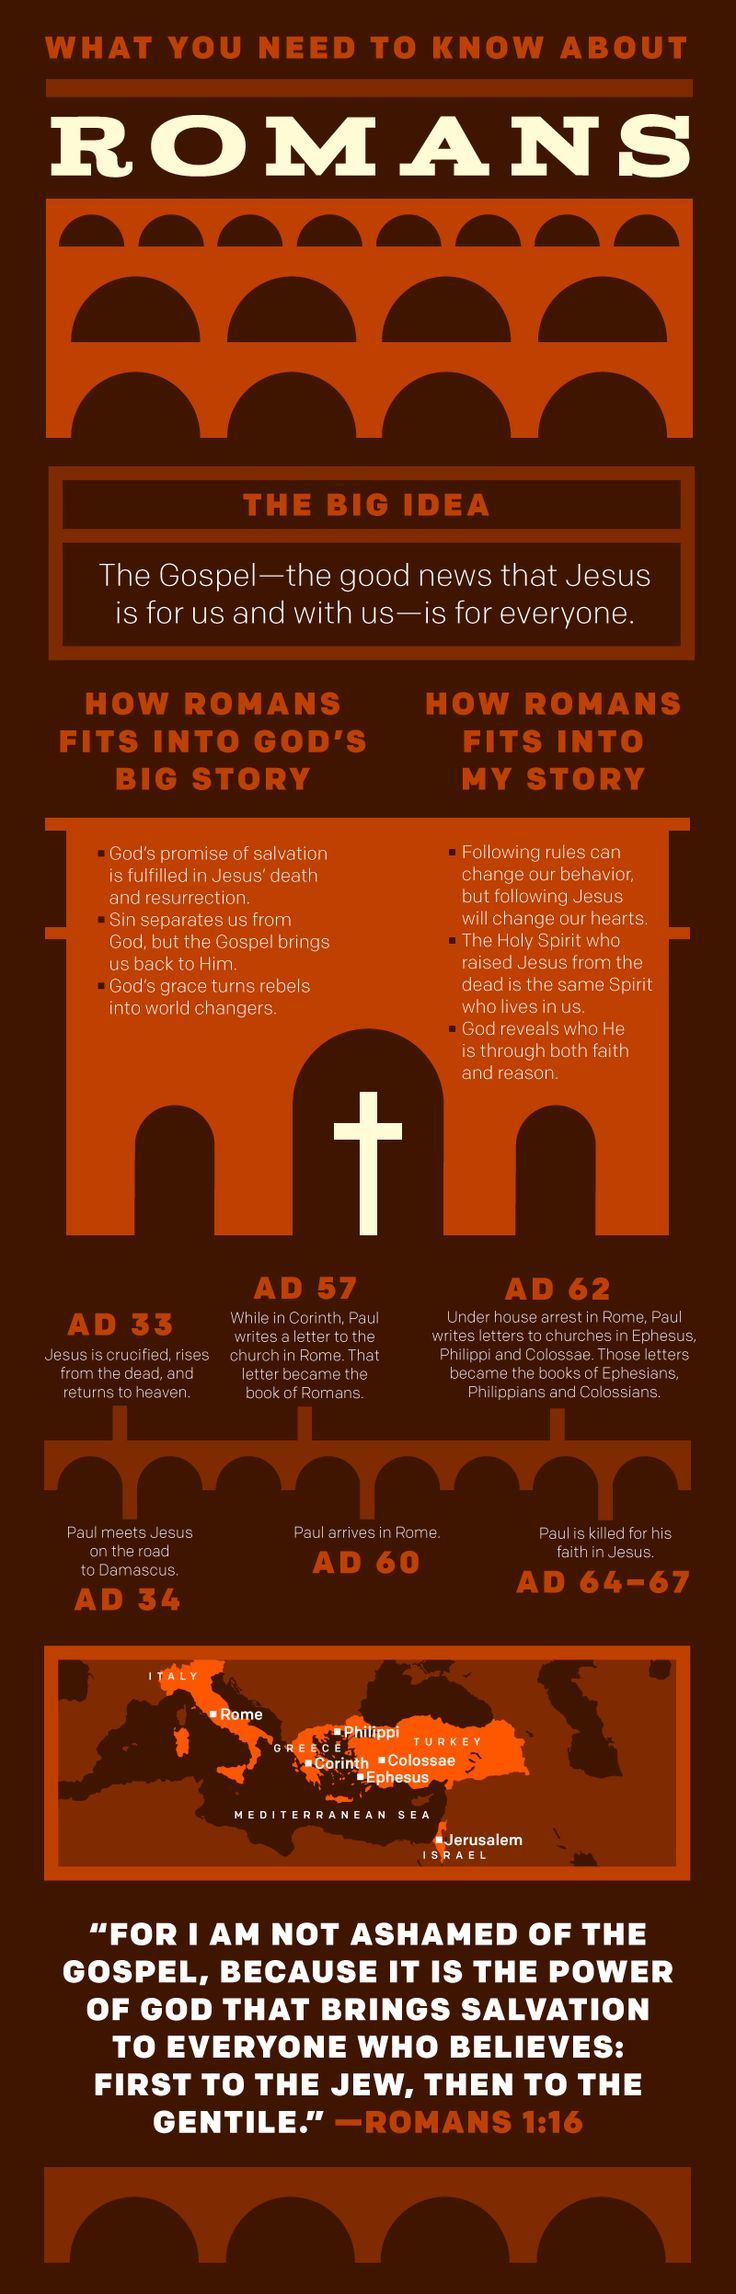 Everything You Need To Know About Romans | Articles | NewSpring Church bible studies bible study plans